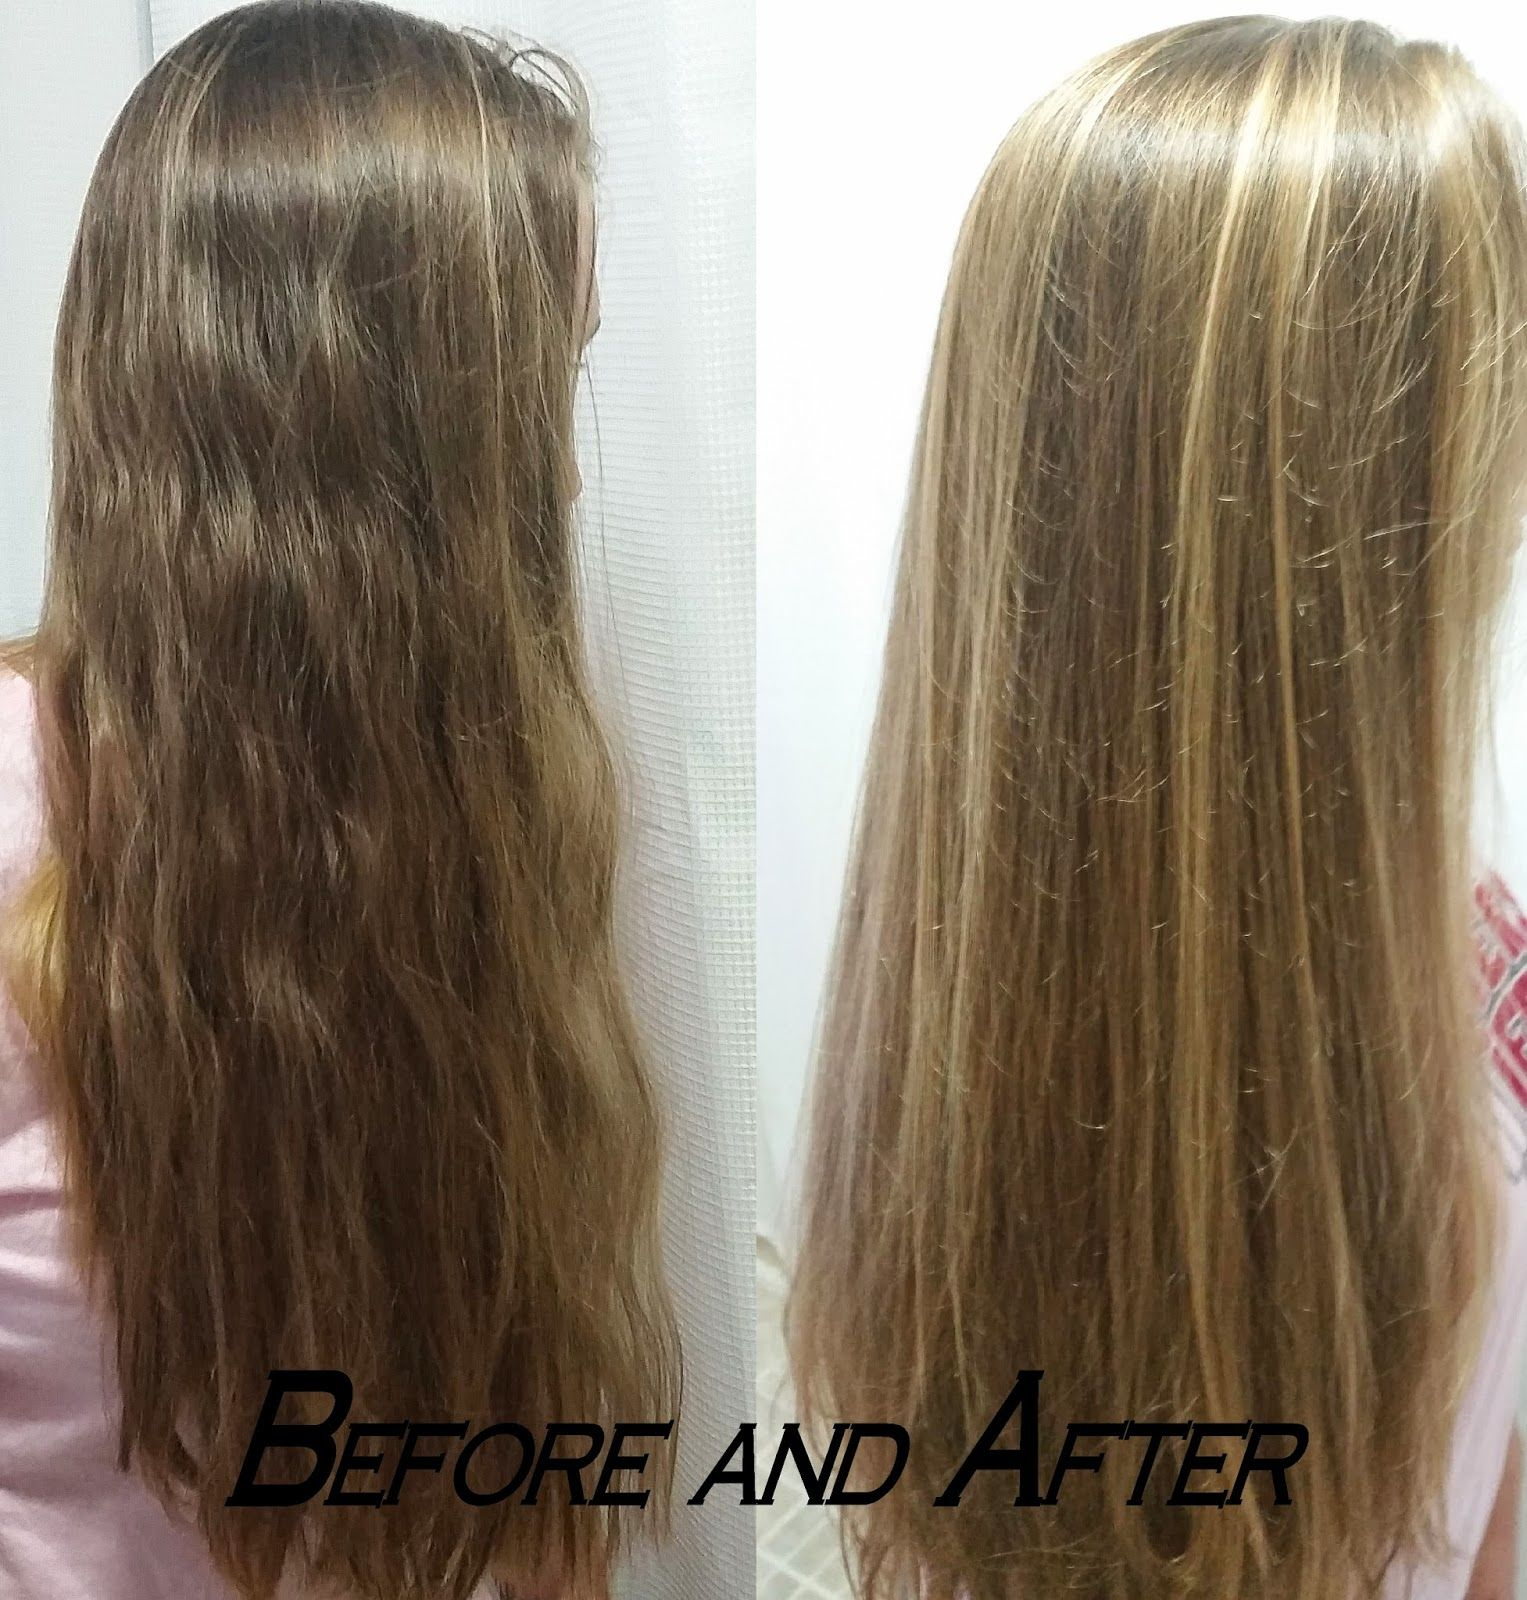 Whatsoever Things Are Lovely Beauty Tip Diy Honey Hair Moisturizer Also A Natural Hair Lightener Lighten Hair Naturally How To Lighten Hair Honey Hair